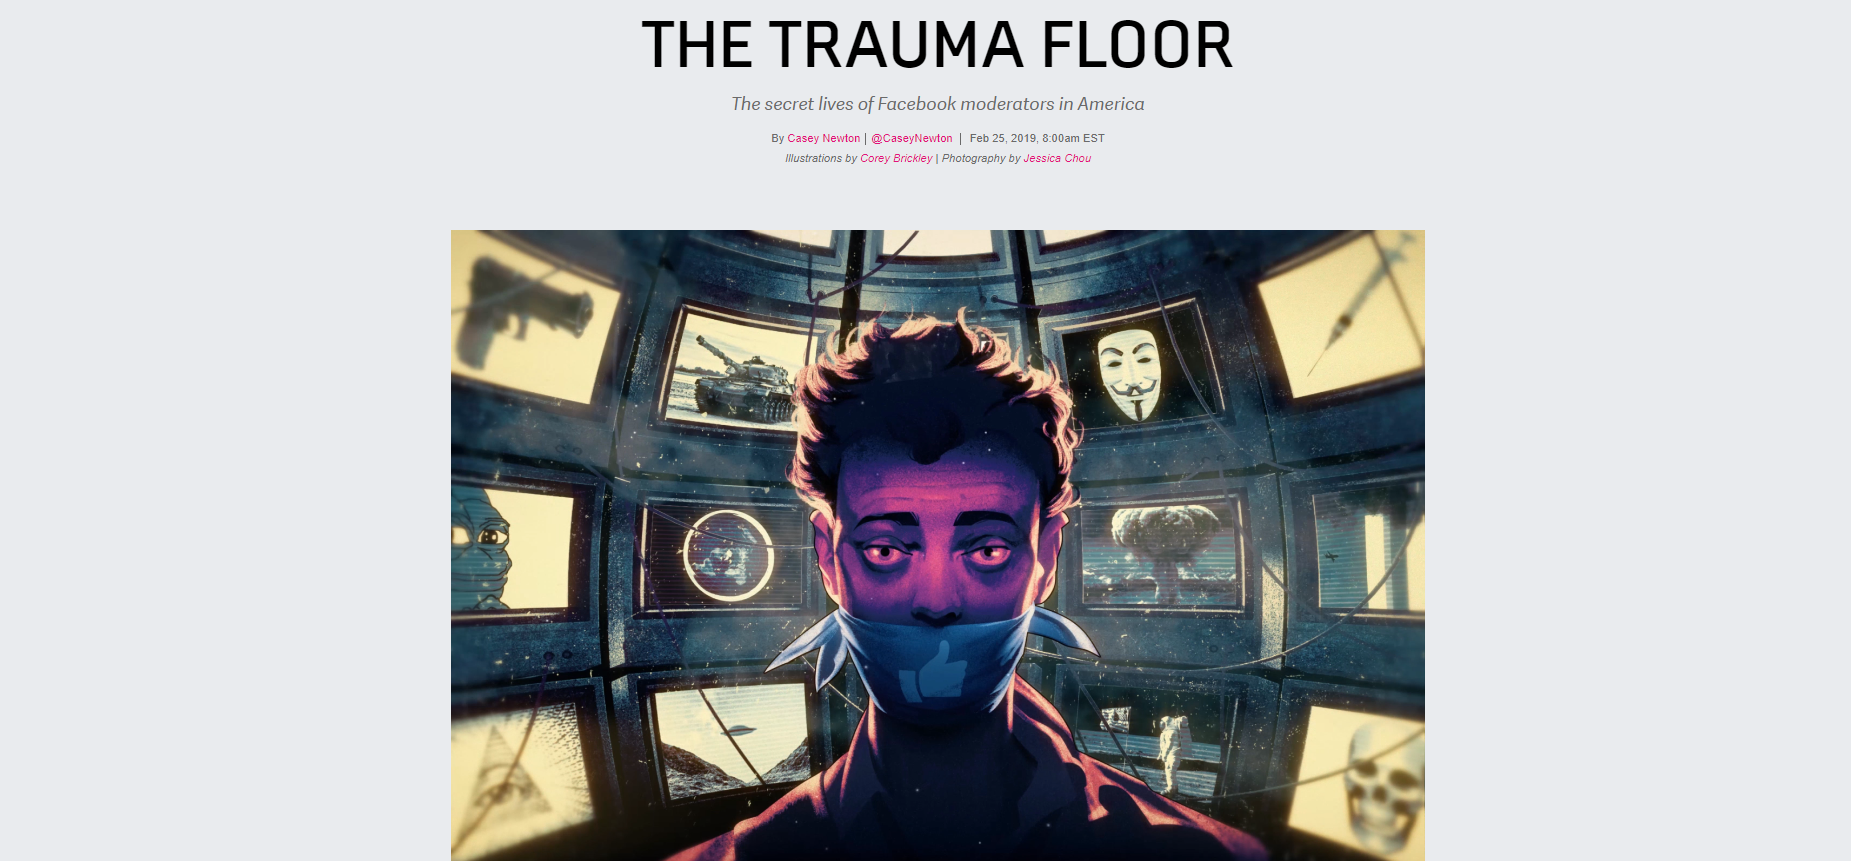 The trauma floor